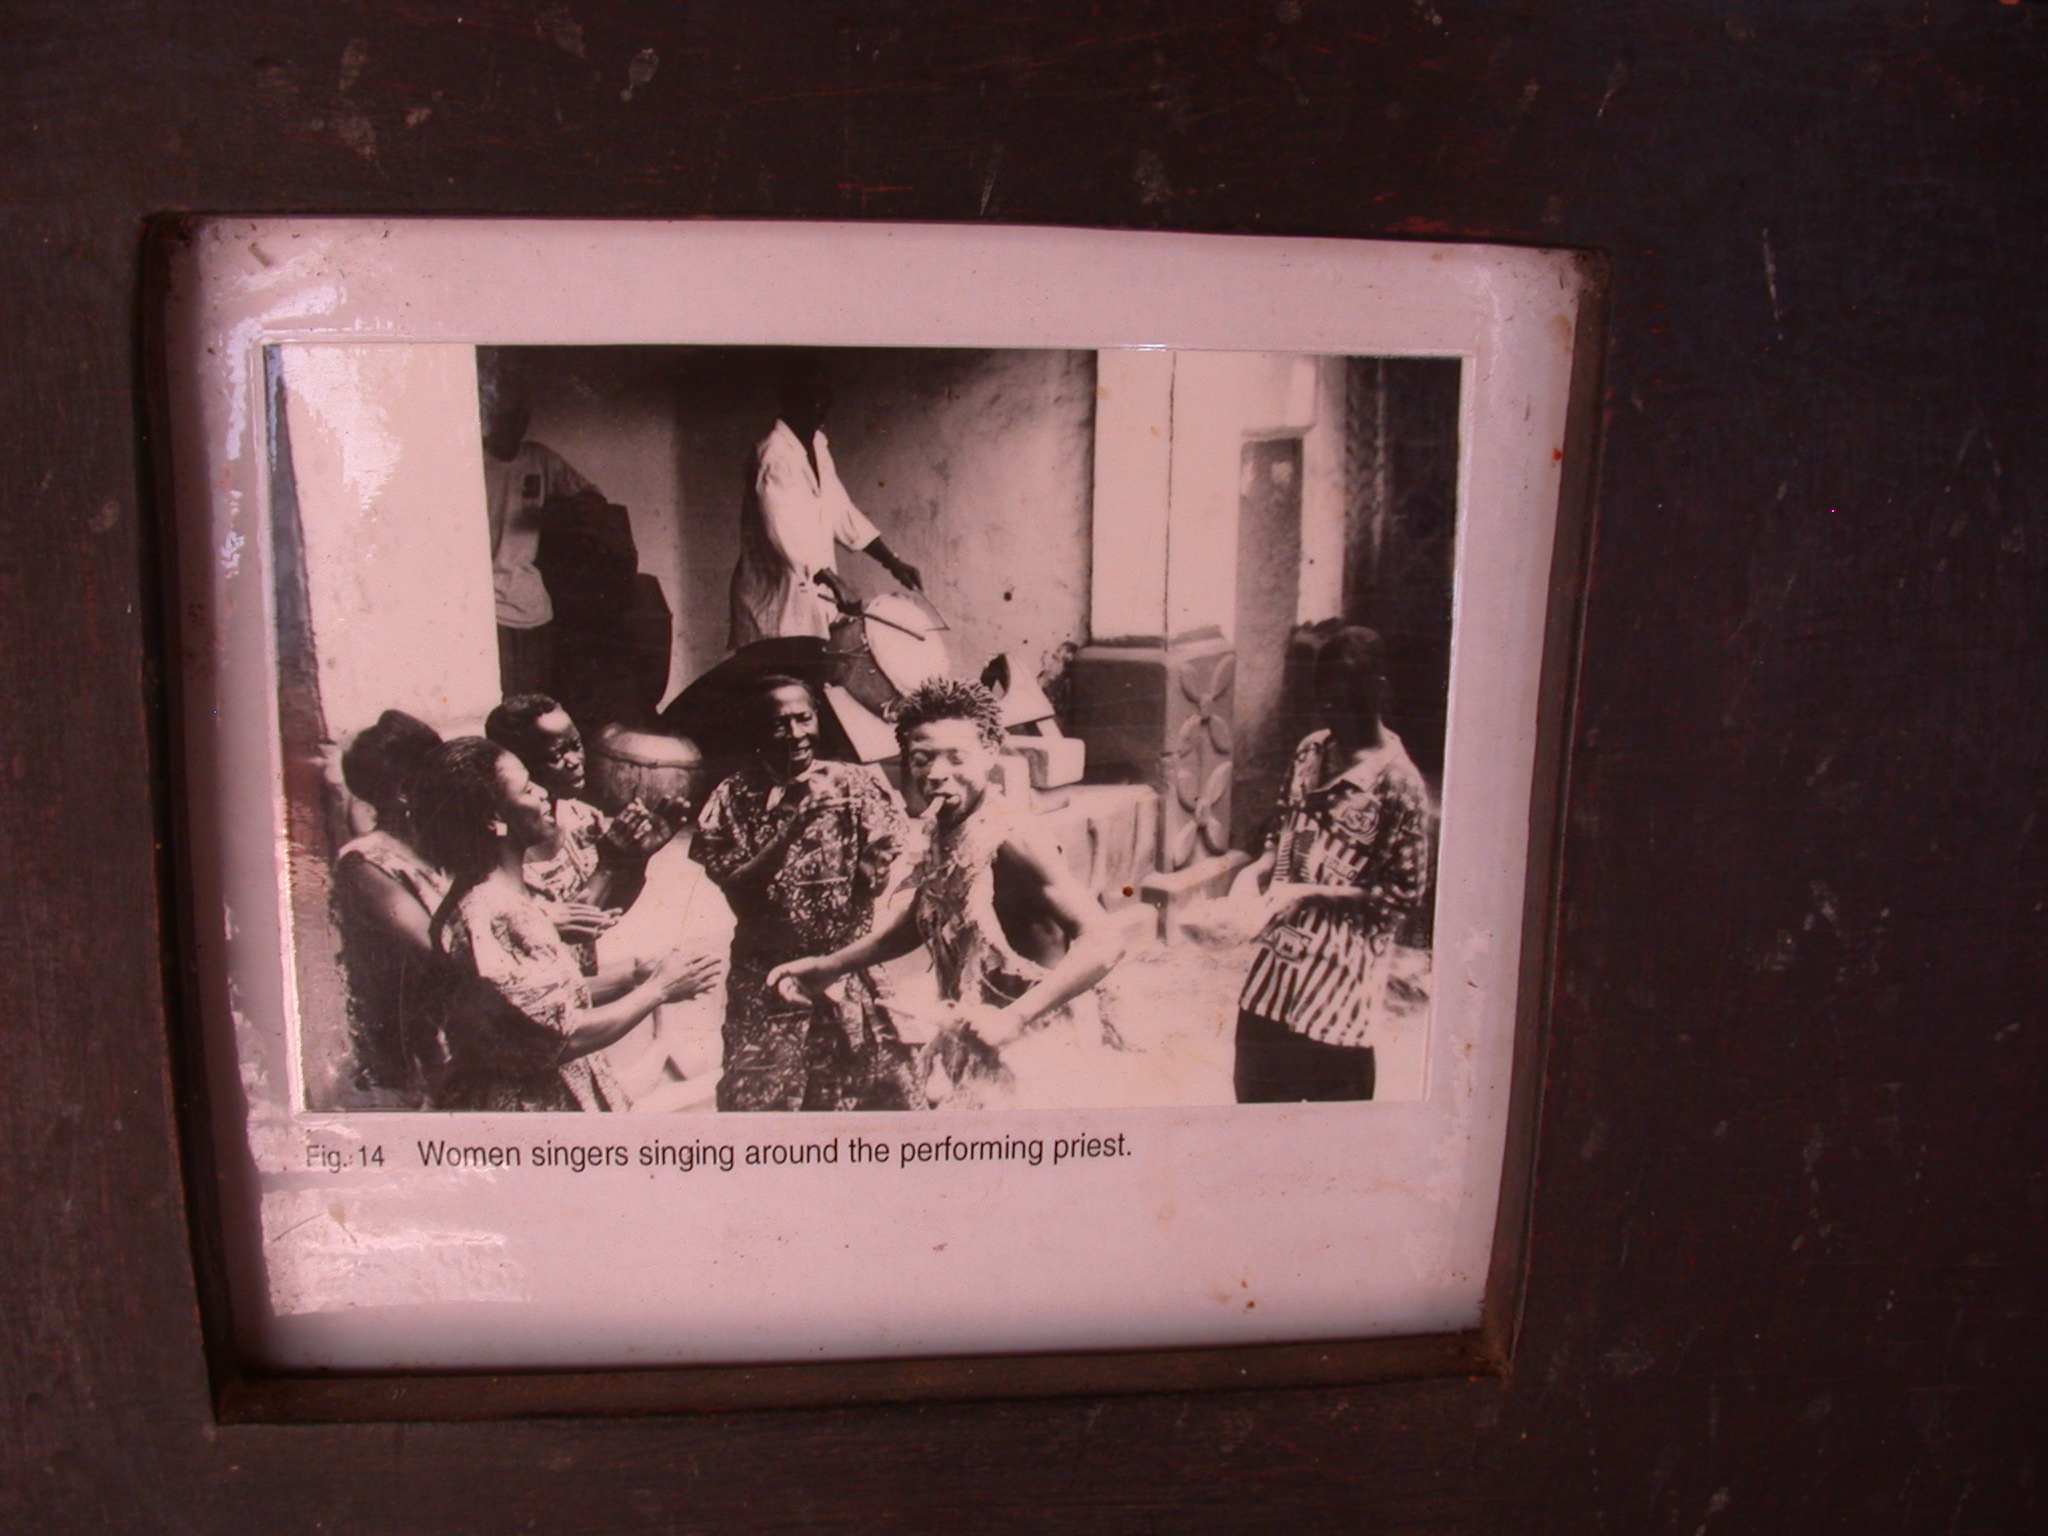 Photograph of Women Singing Around Performing Okomfo, Asante Traditional Shrine at Ejisu-Besease, Ghana